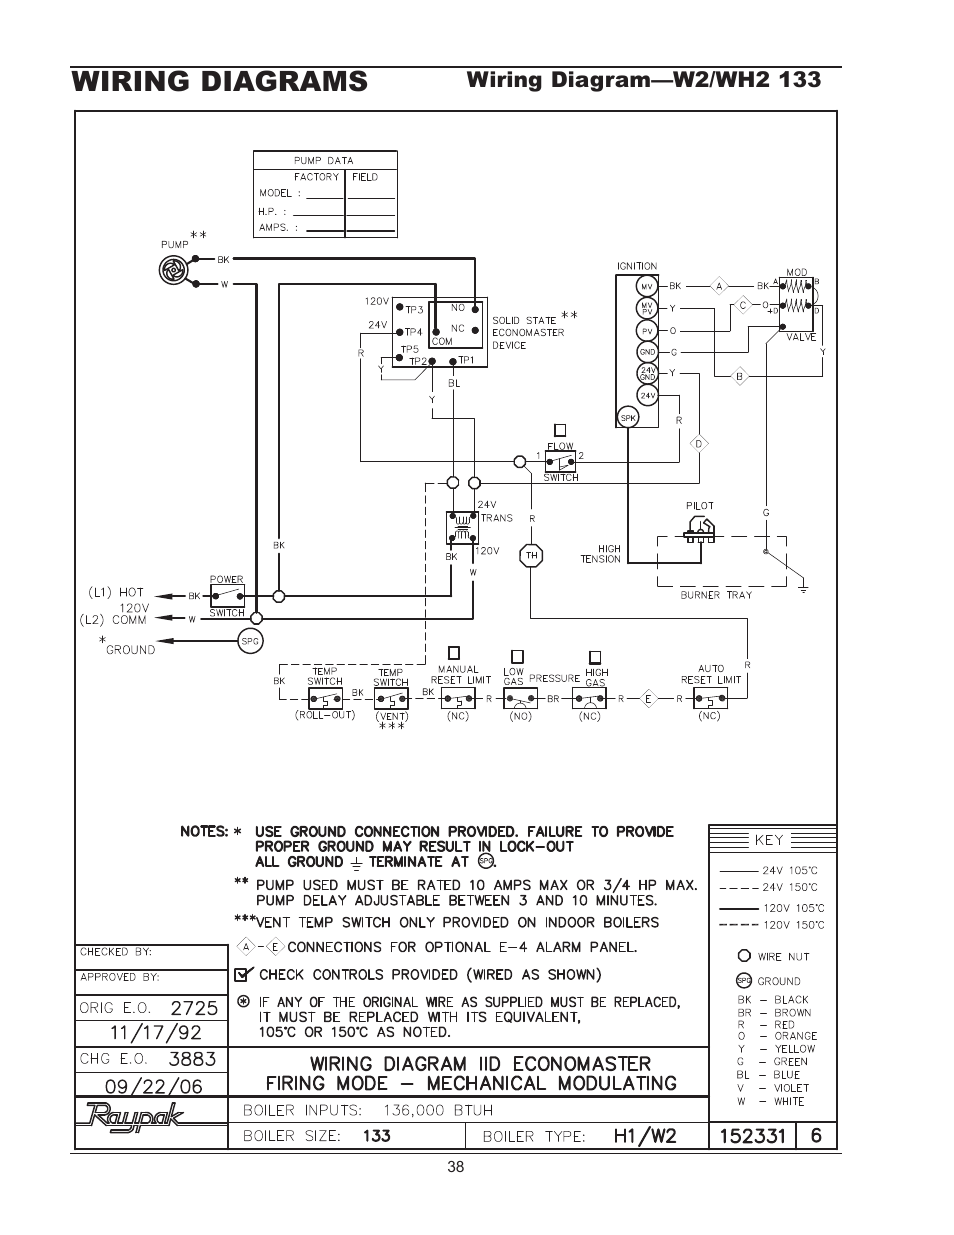 Raypak H3 1336 Wiring Diagram Diagrams For Dummies Completed Rh 27 Schwarzgoldtrio De Hummer